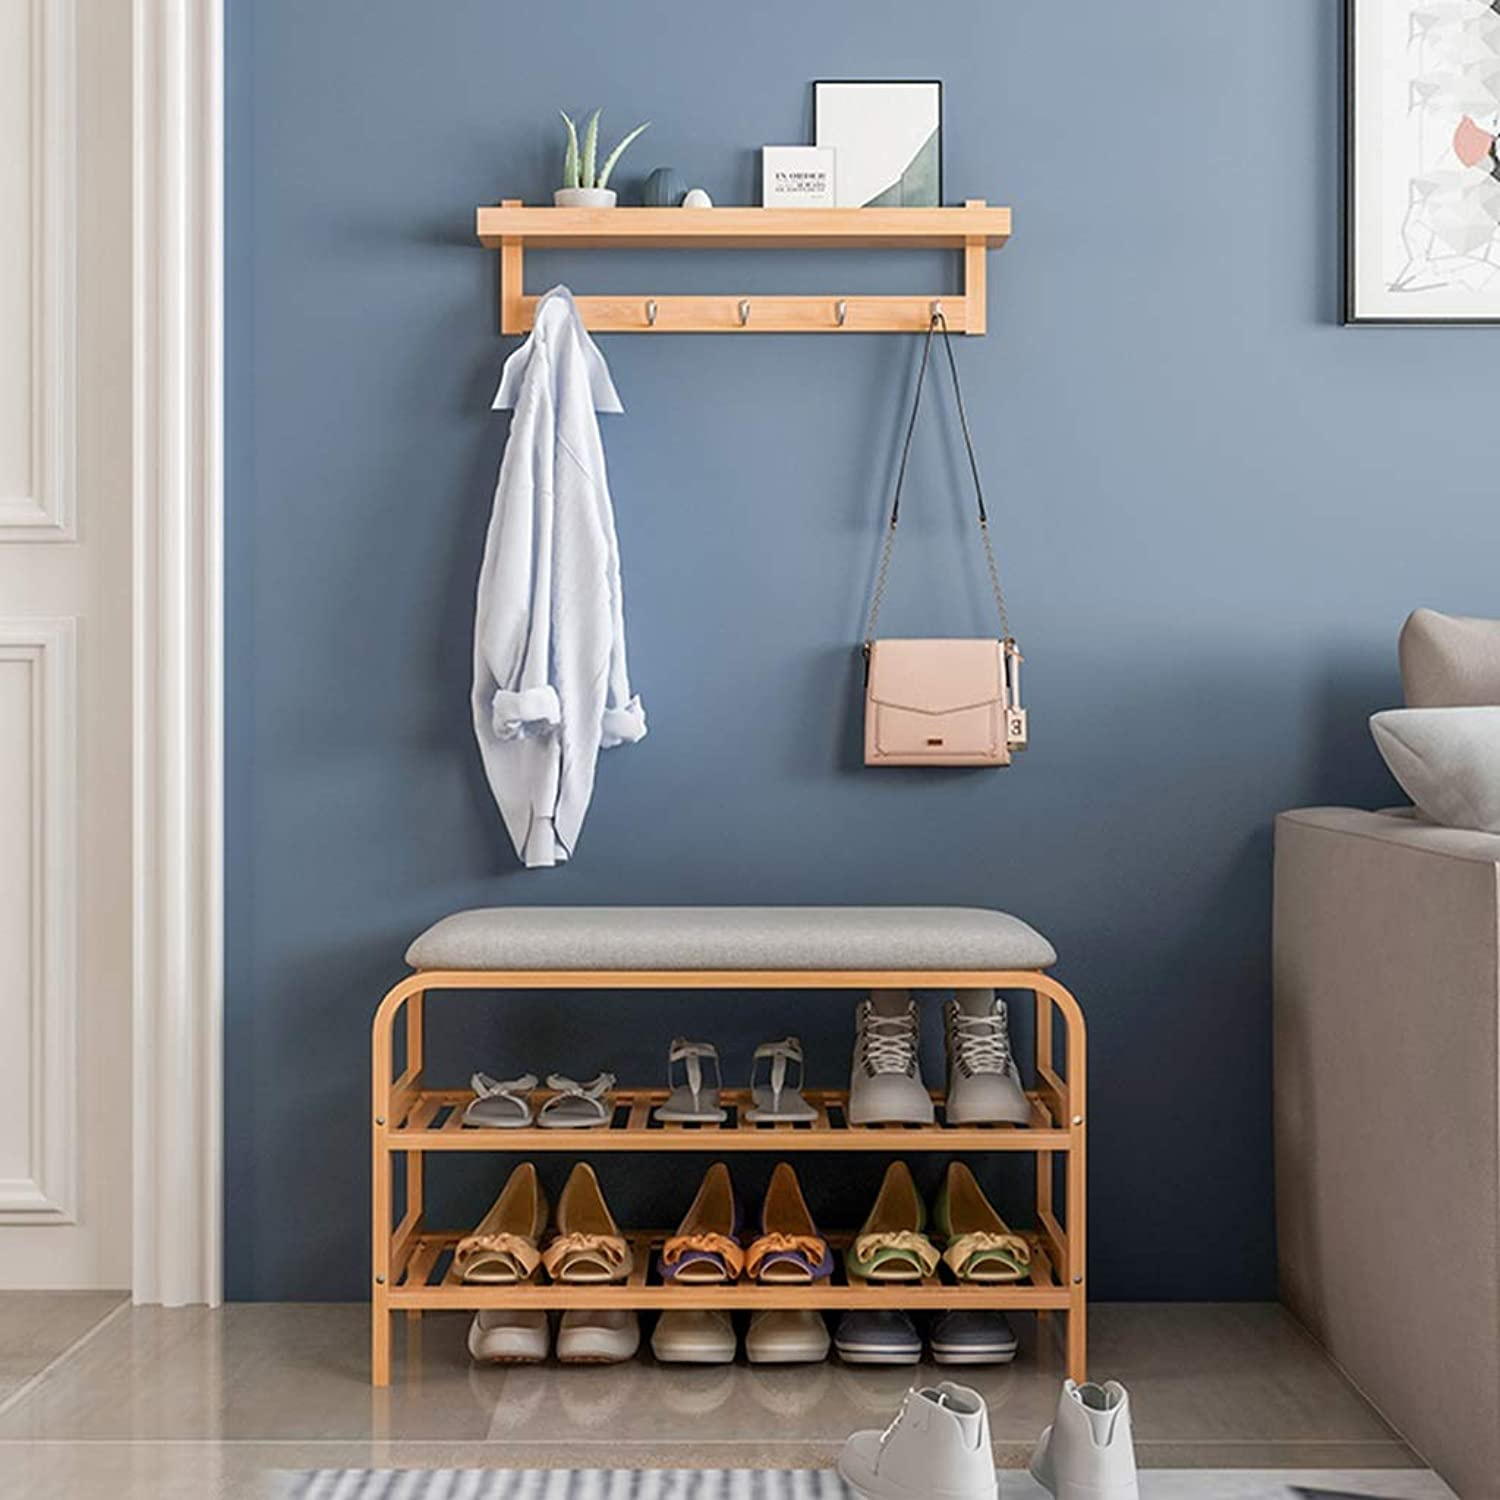 Modern Bamboo Wood shoes Bench Storage shoes Rack 2-Tier Upholstered Seat Stool, Waterproof shoes Shelf for Entryway, Livingroom, Hallway (Size   2-Tier)